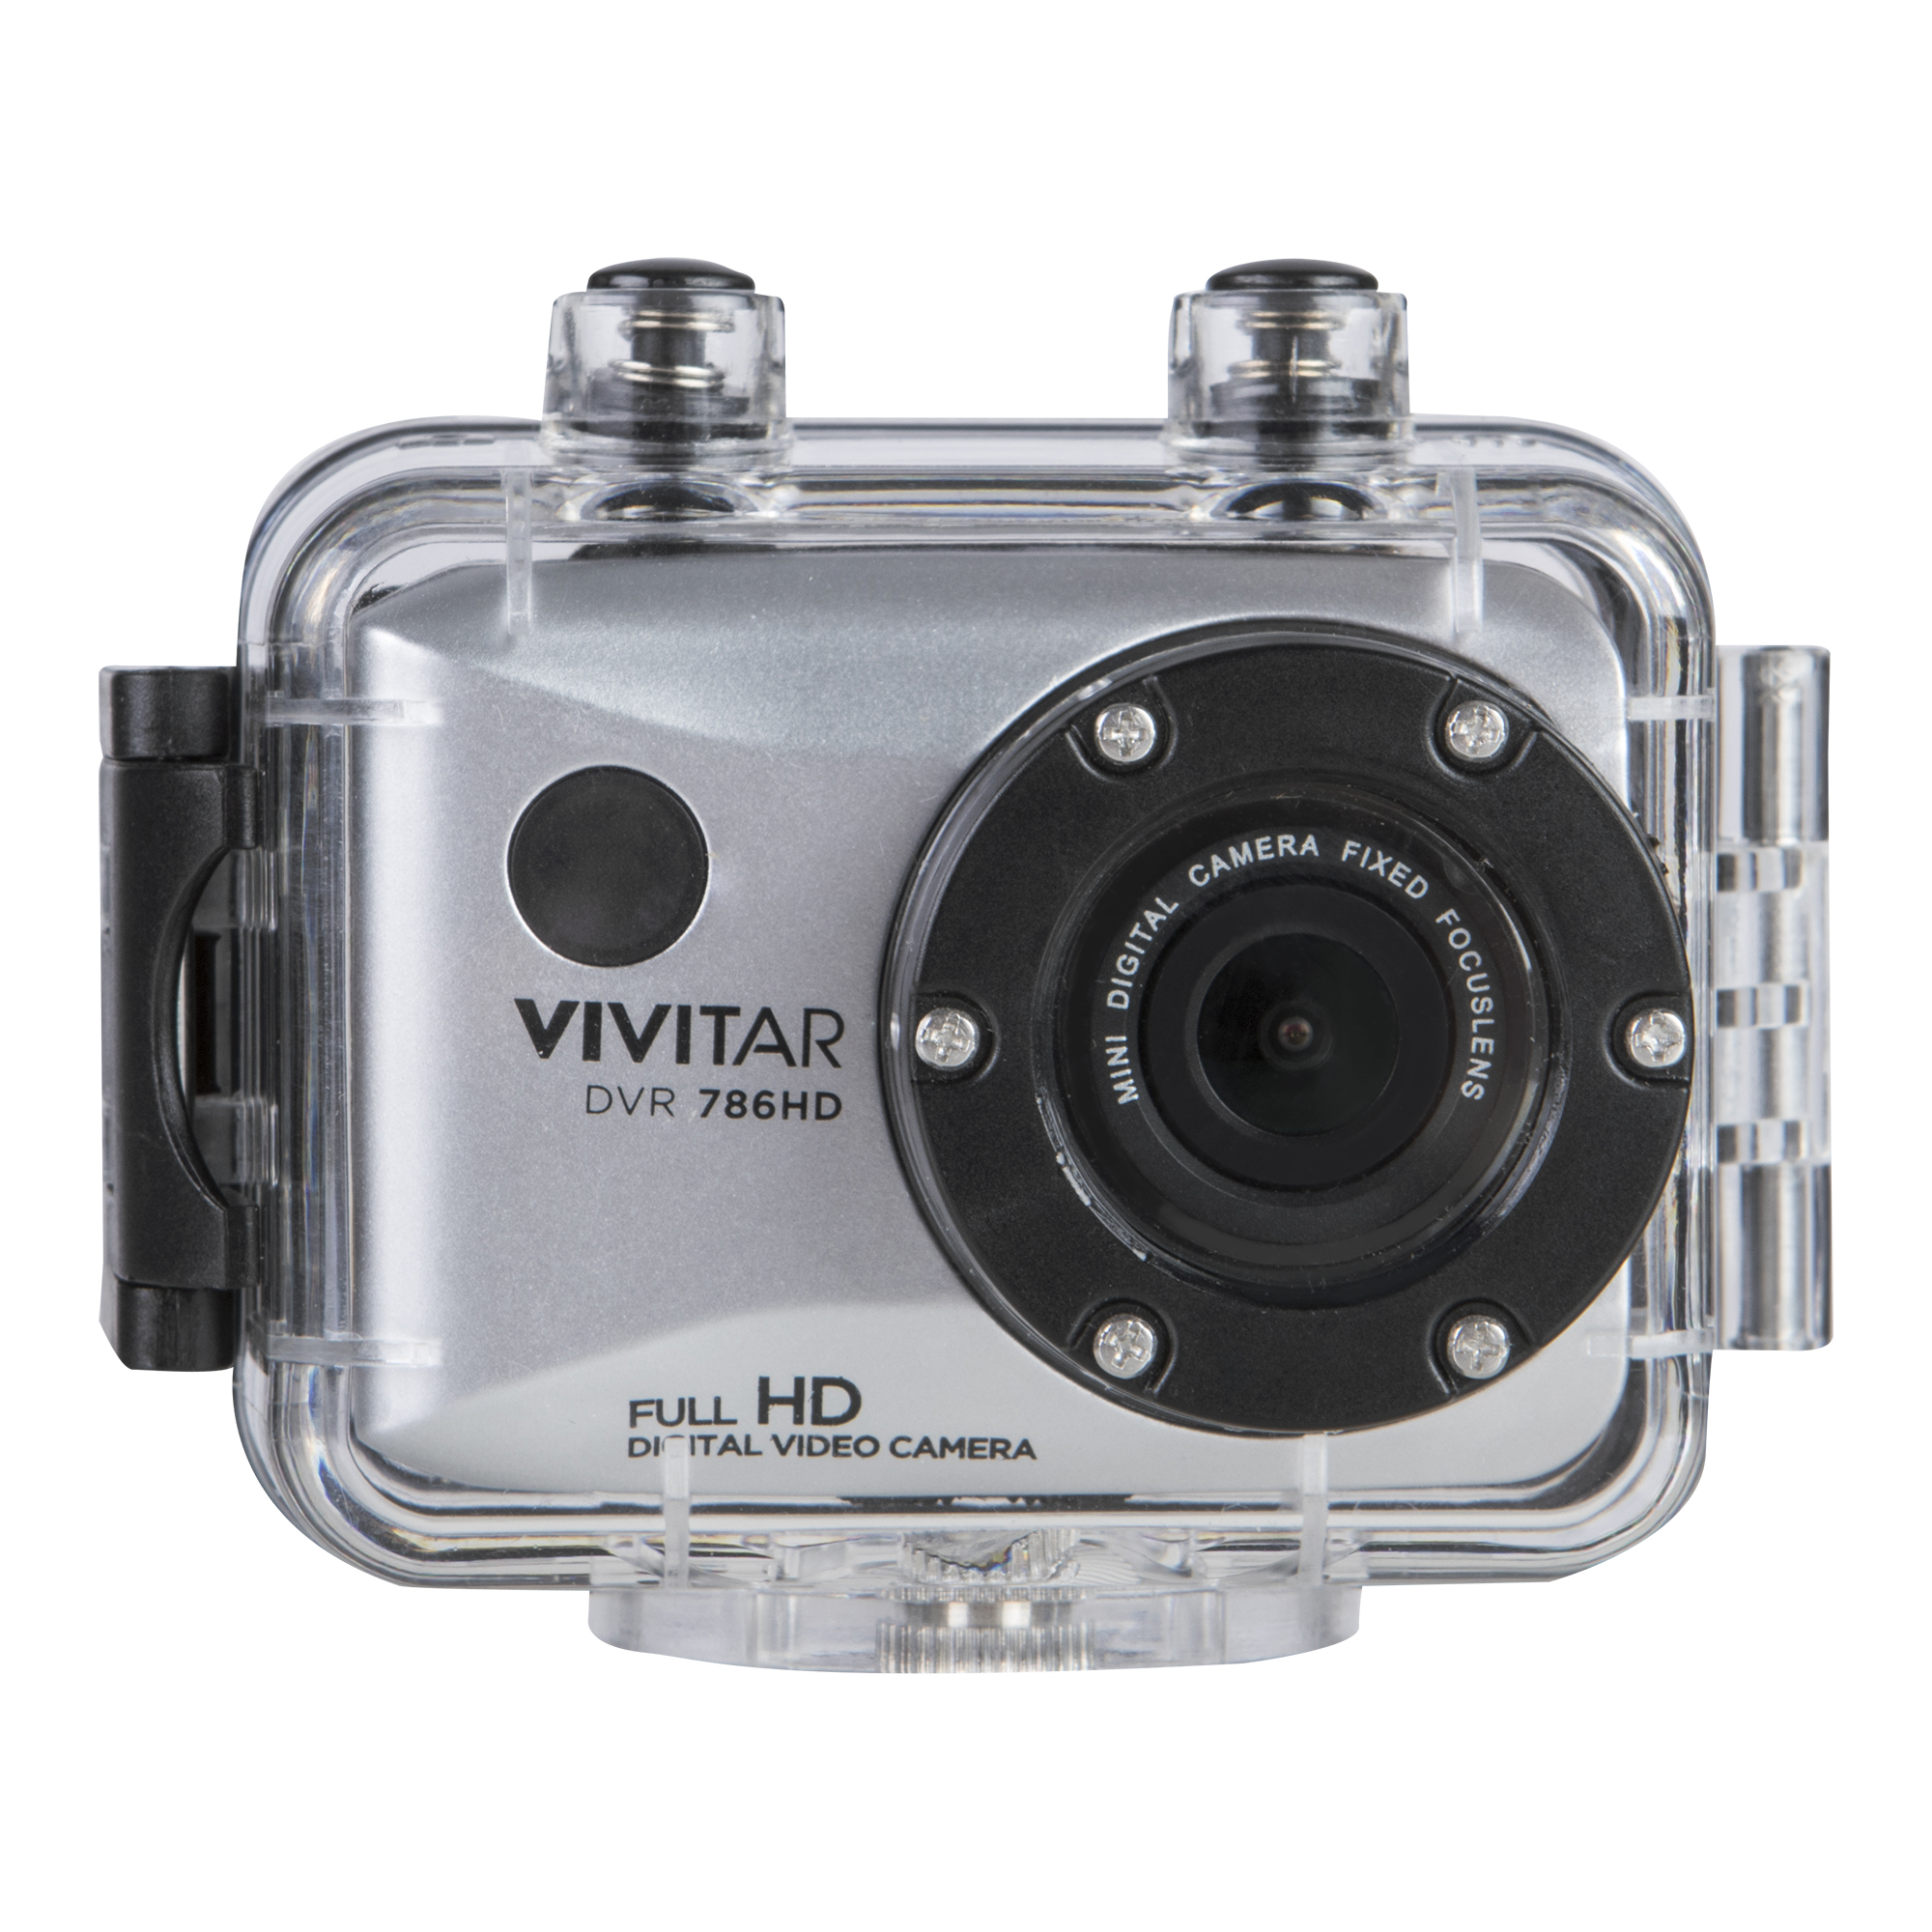 Camera Vivitar Action Cam vivitar full hd action camera walmart com